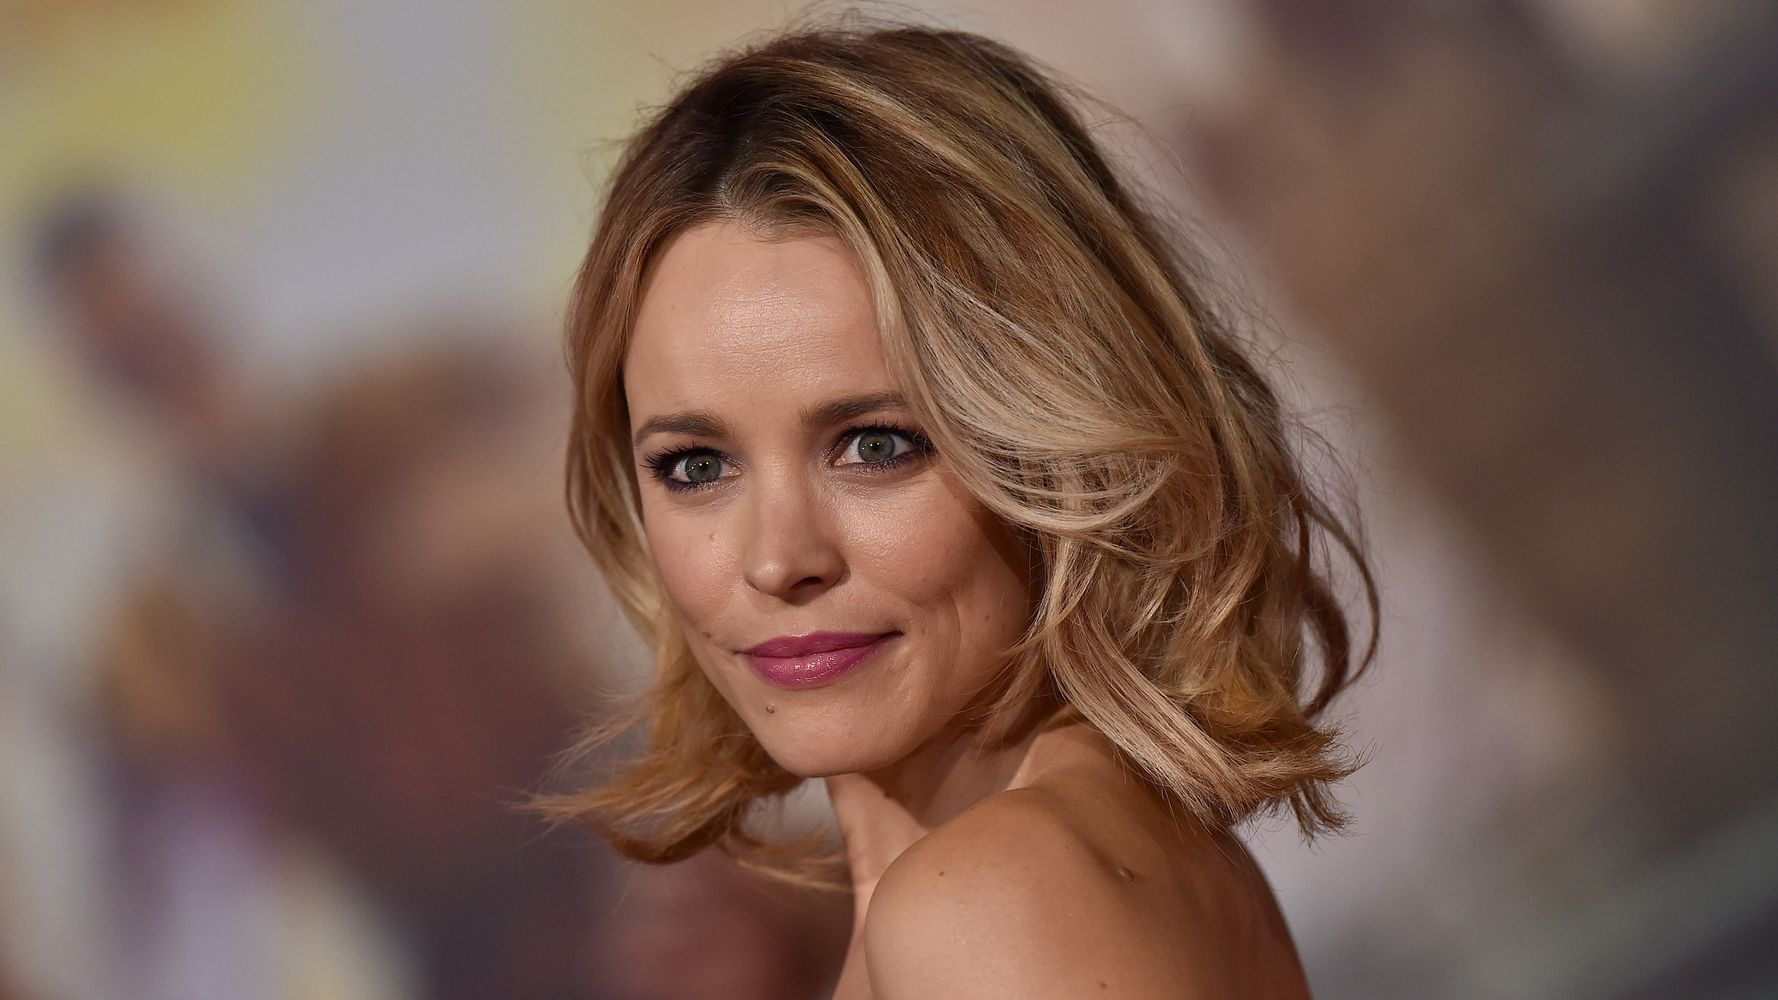 Thoughtful Quotes About Motherhood From Rachel McAdams